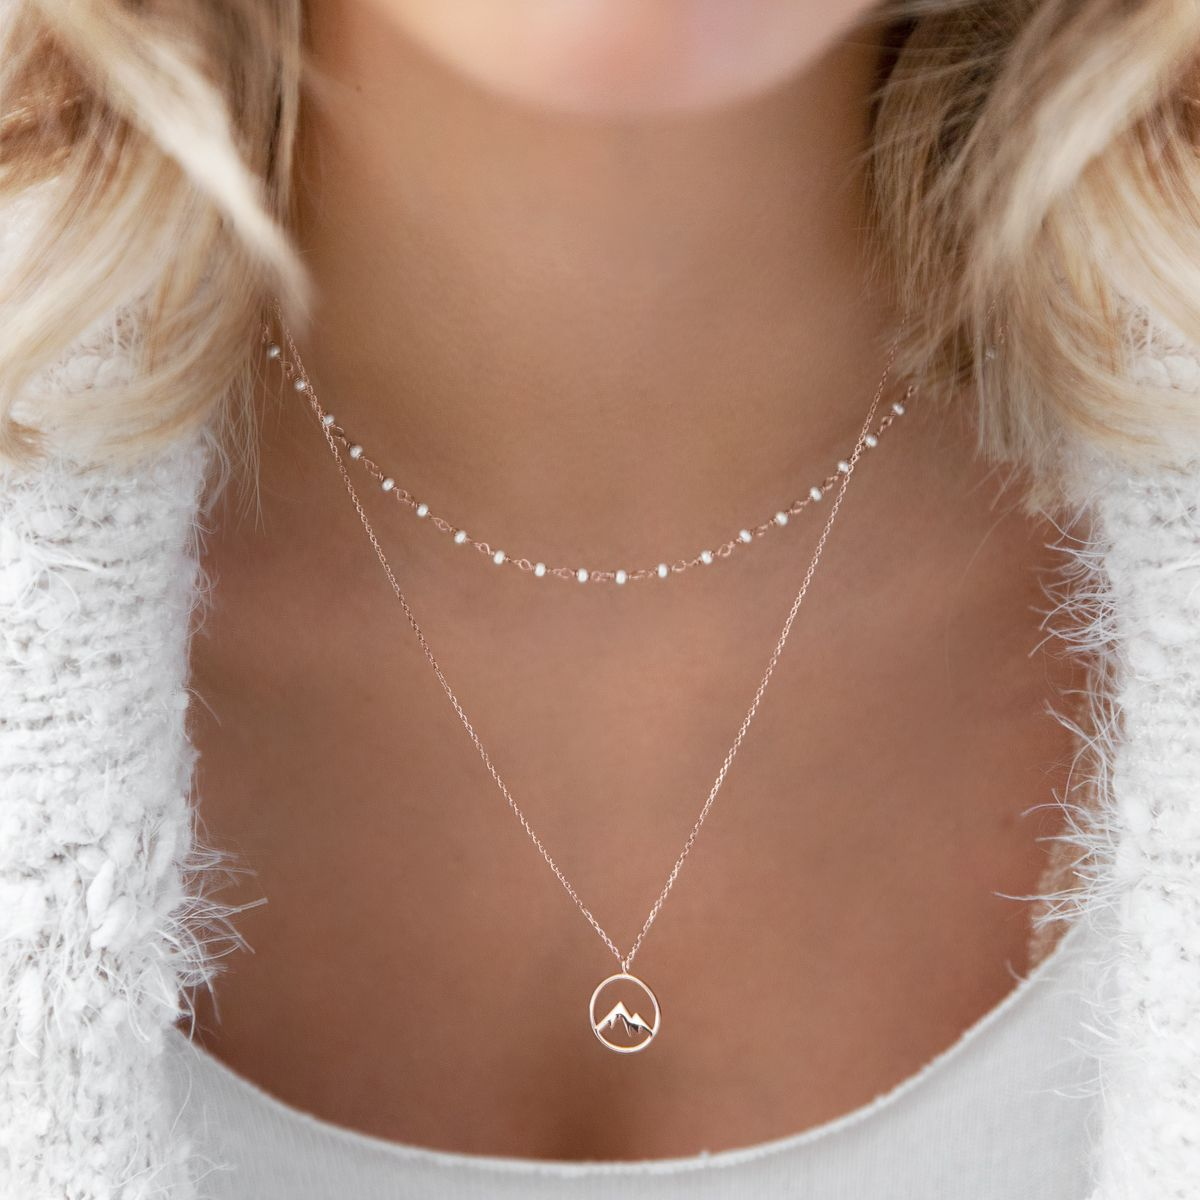 Ain T No Mountain High Enough Jewelry Fashion Mountain Adventure Love Halskette Necklace Rosegold Styl Halskette Rosegold Zarte Goldkette Halskette